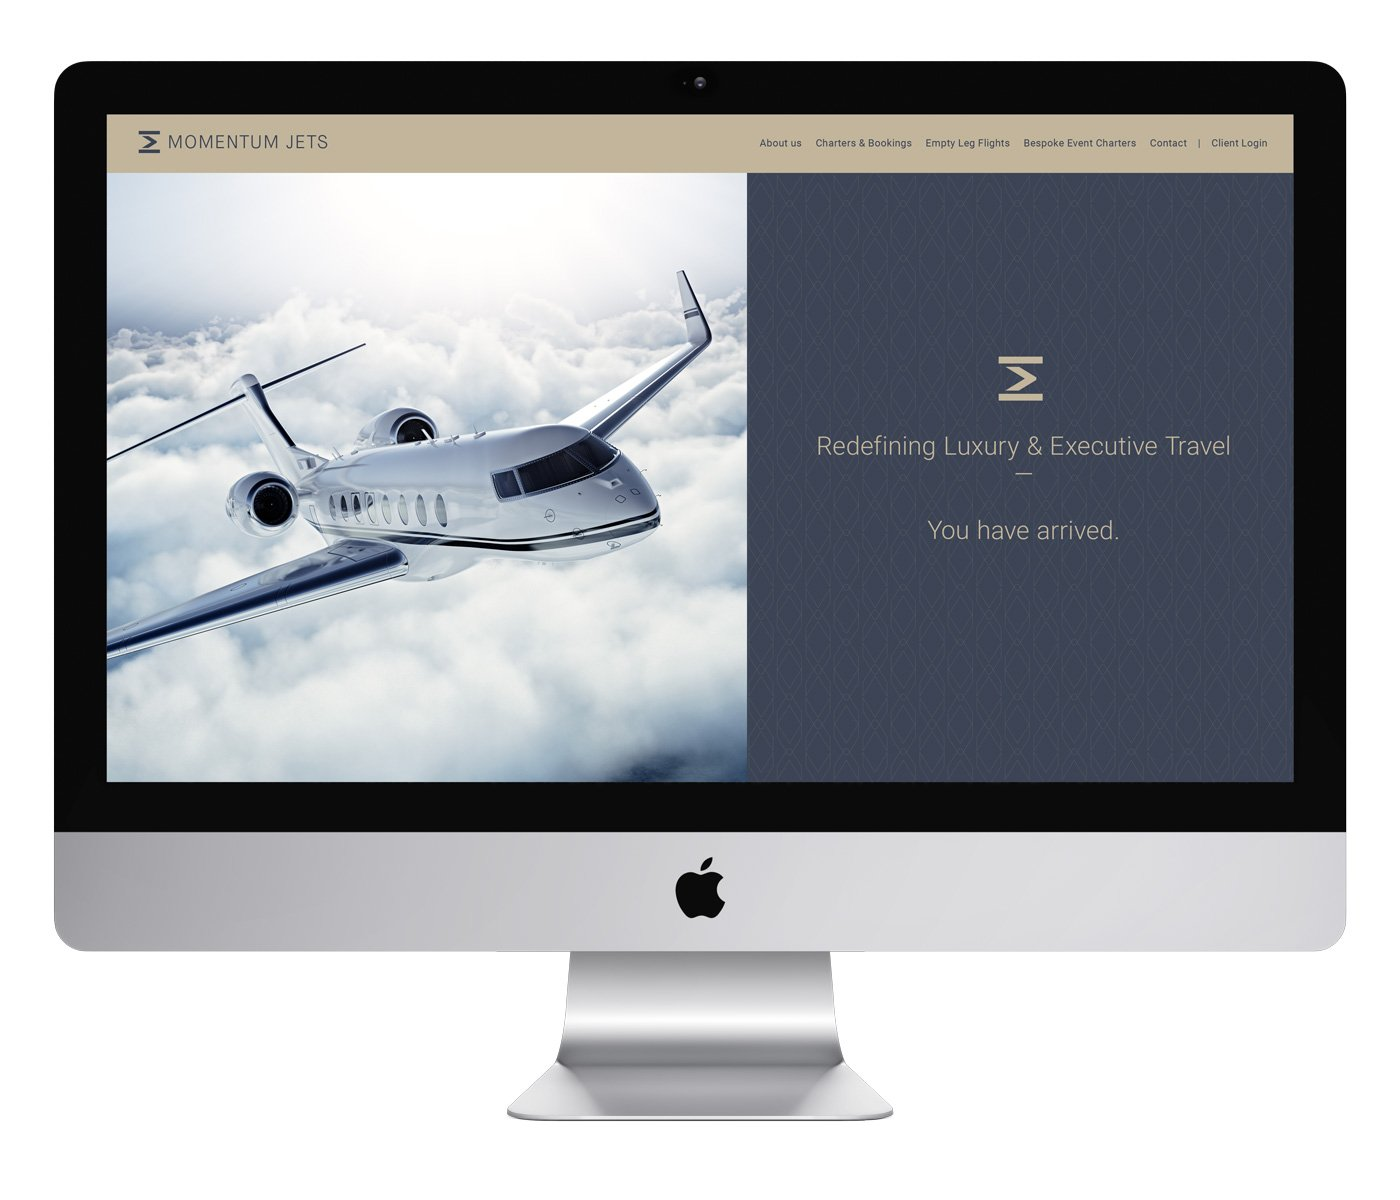 Private jet, luxury and executive travel brand website